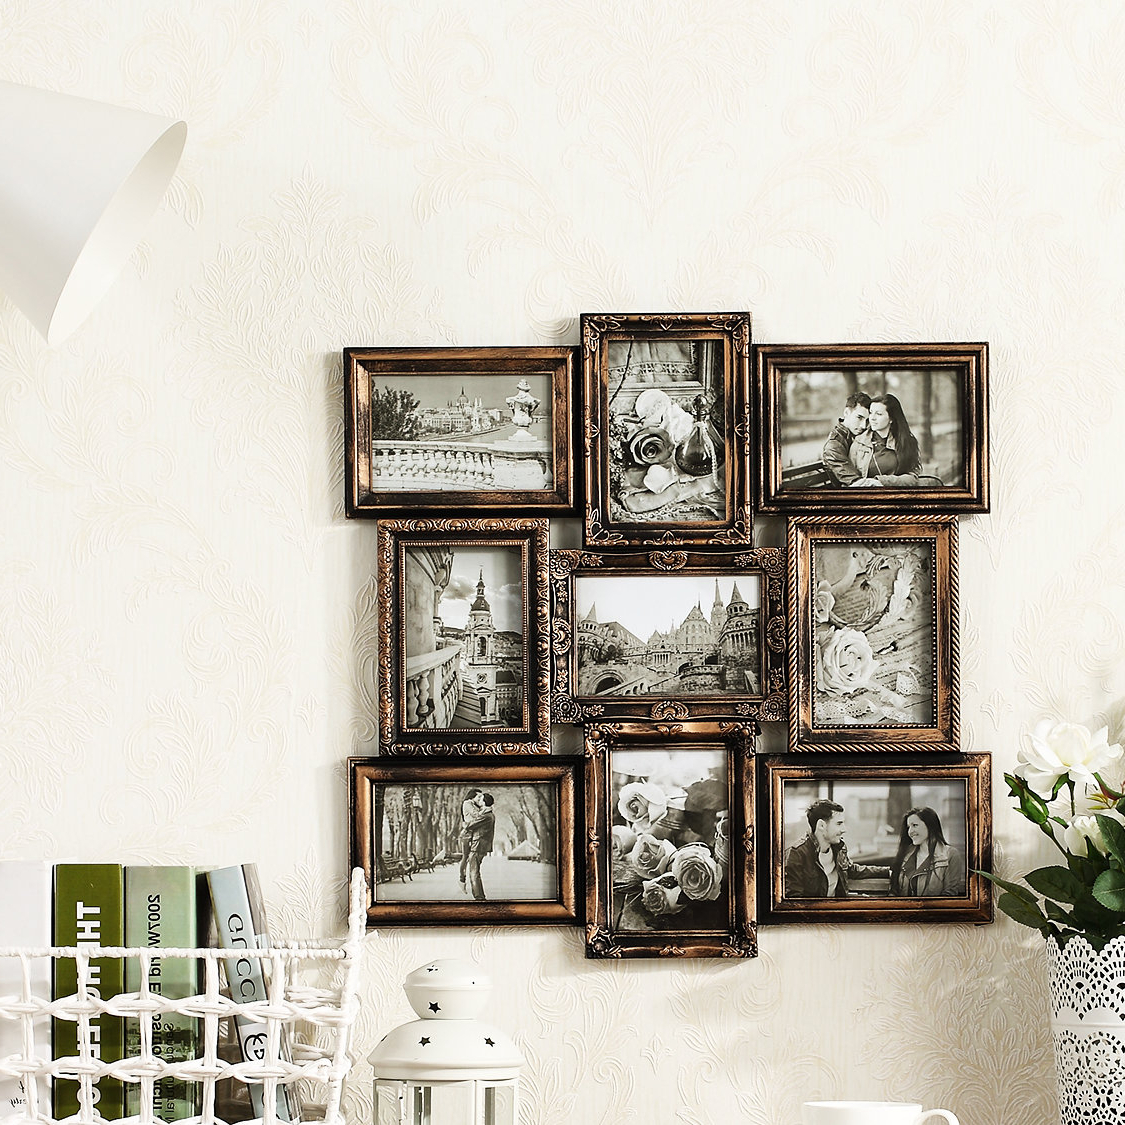 Preferred Millanocket Metal Wheel Photo Holder Wall Decor With Michael Wall Hanging 9 Opening Photo Sockets Picture Frame & Reviews (View 5 of 20)